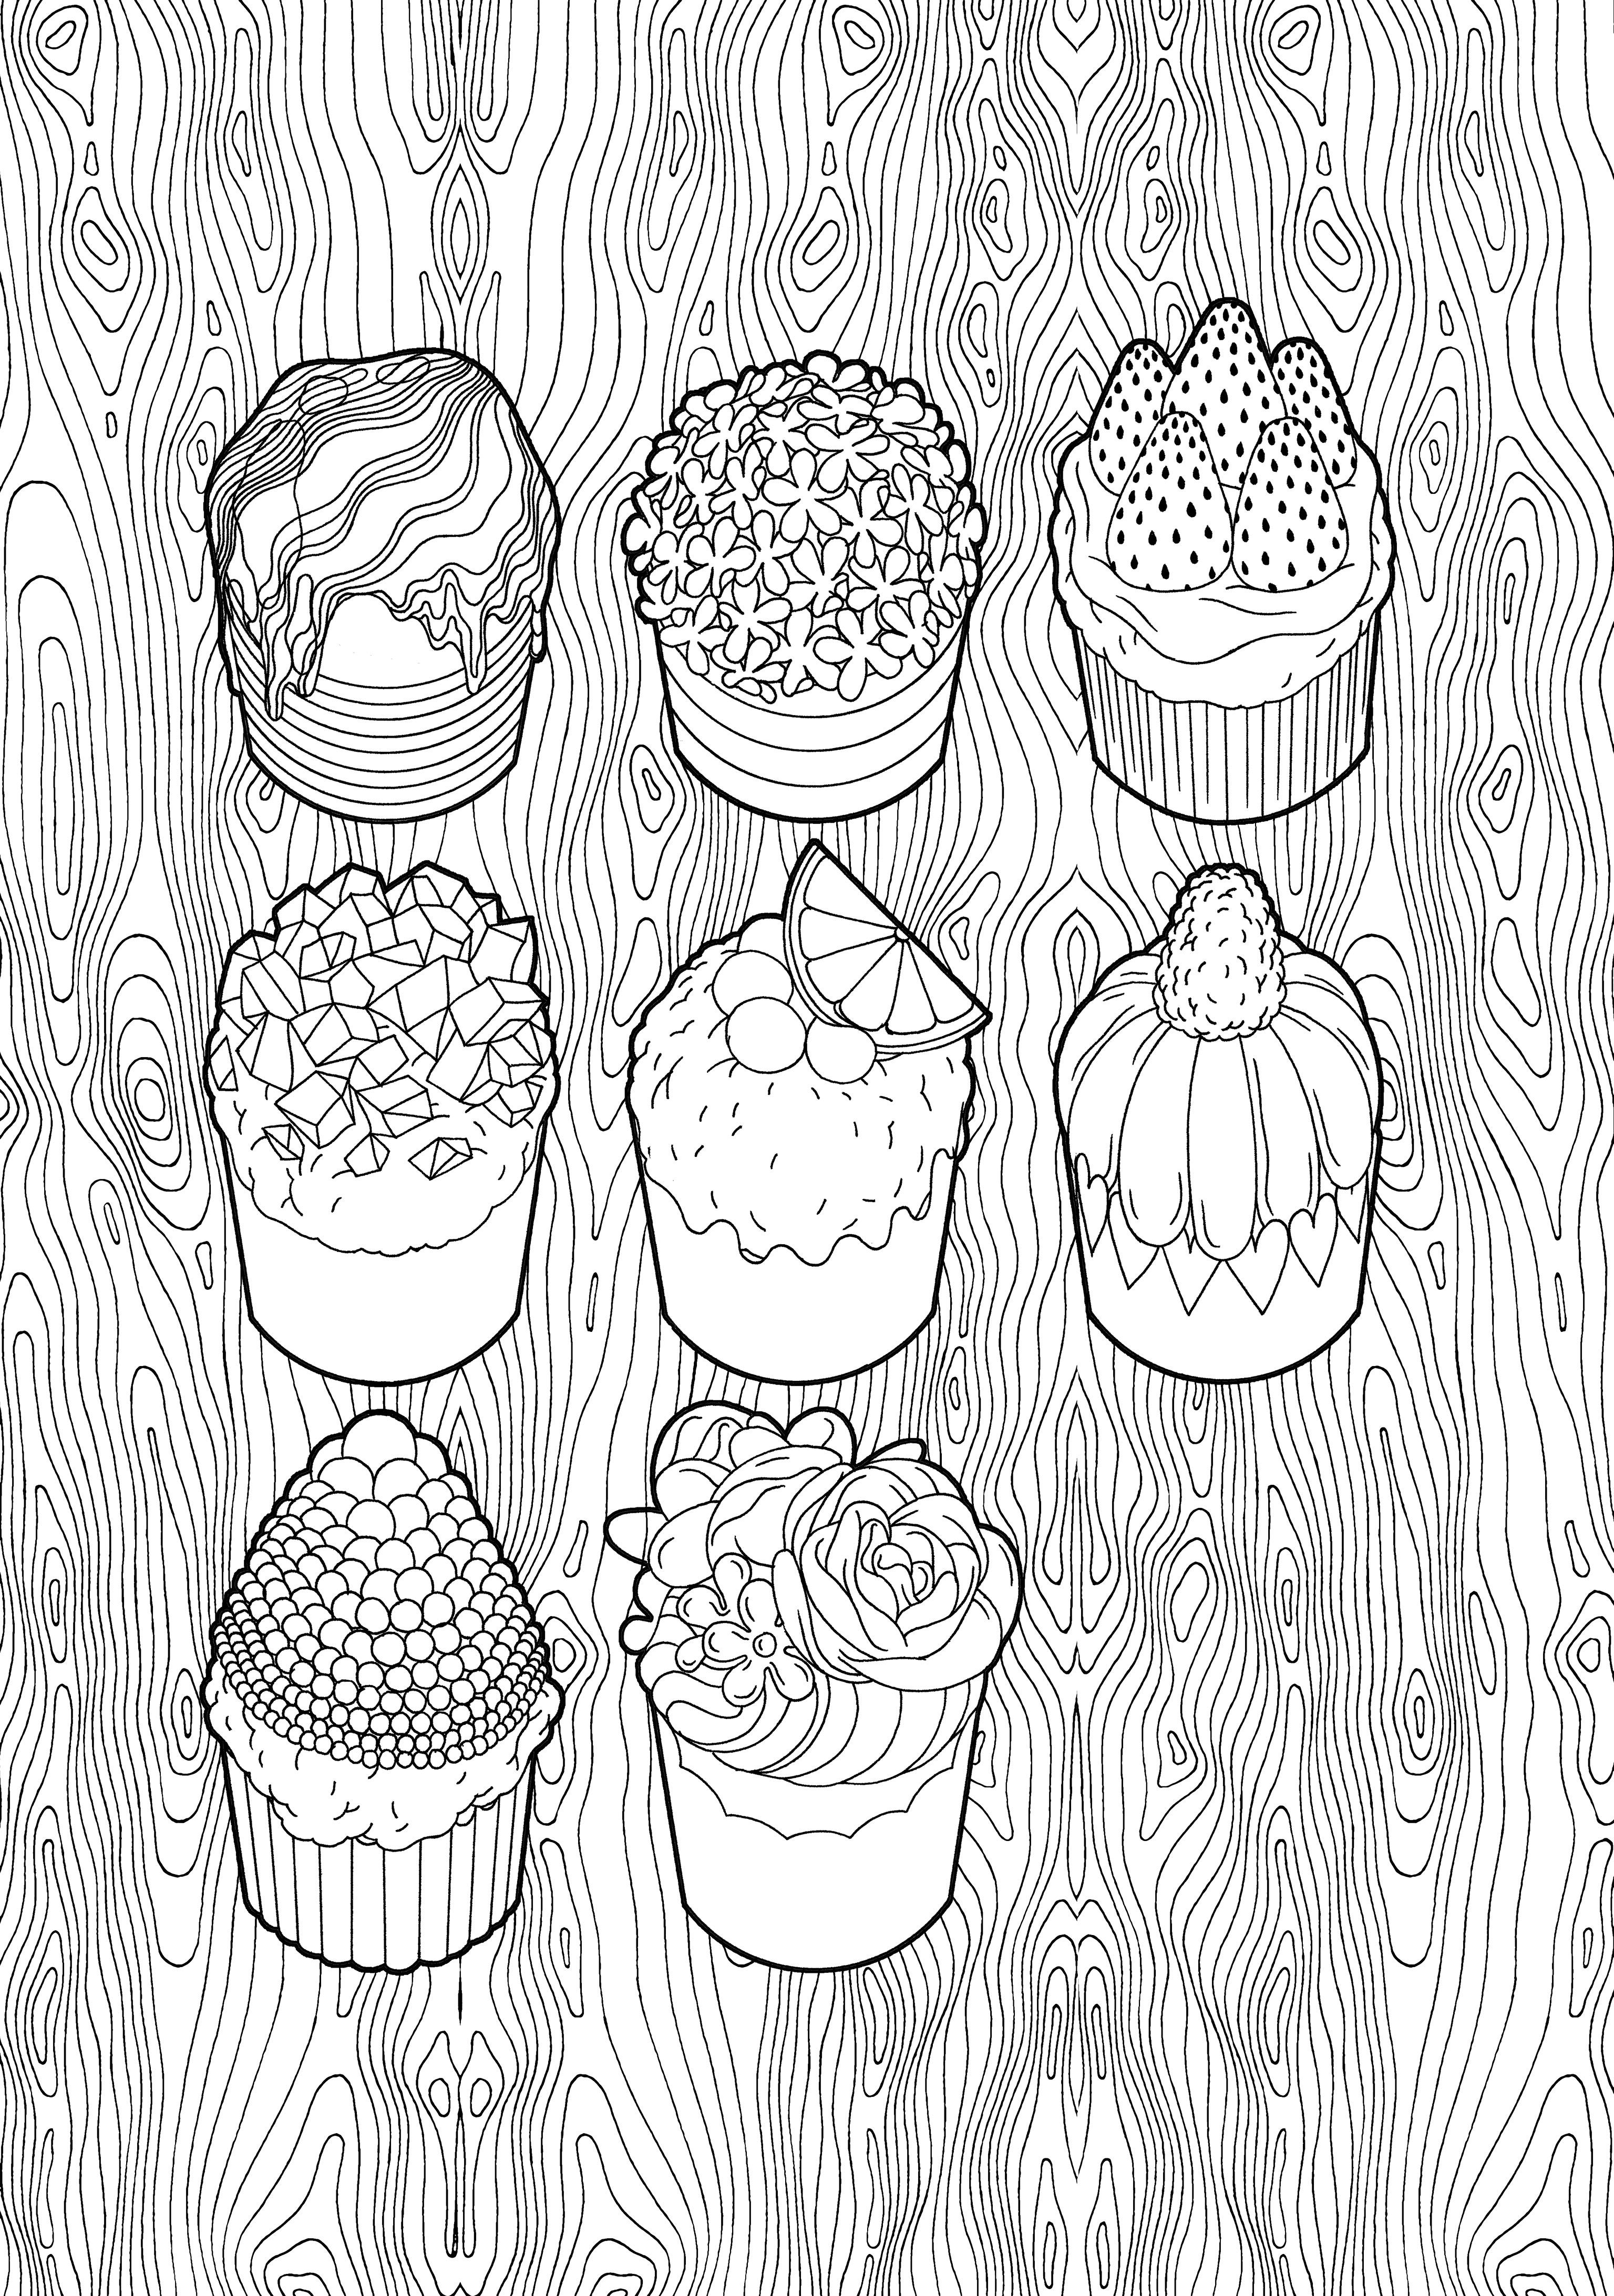 Coloriage Anti Stress Cupcake.Fees 100 Coloriages Anti Stress Buscar Con Google 甜品填色